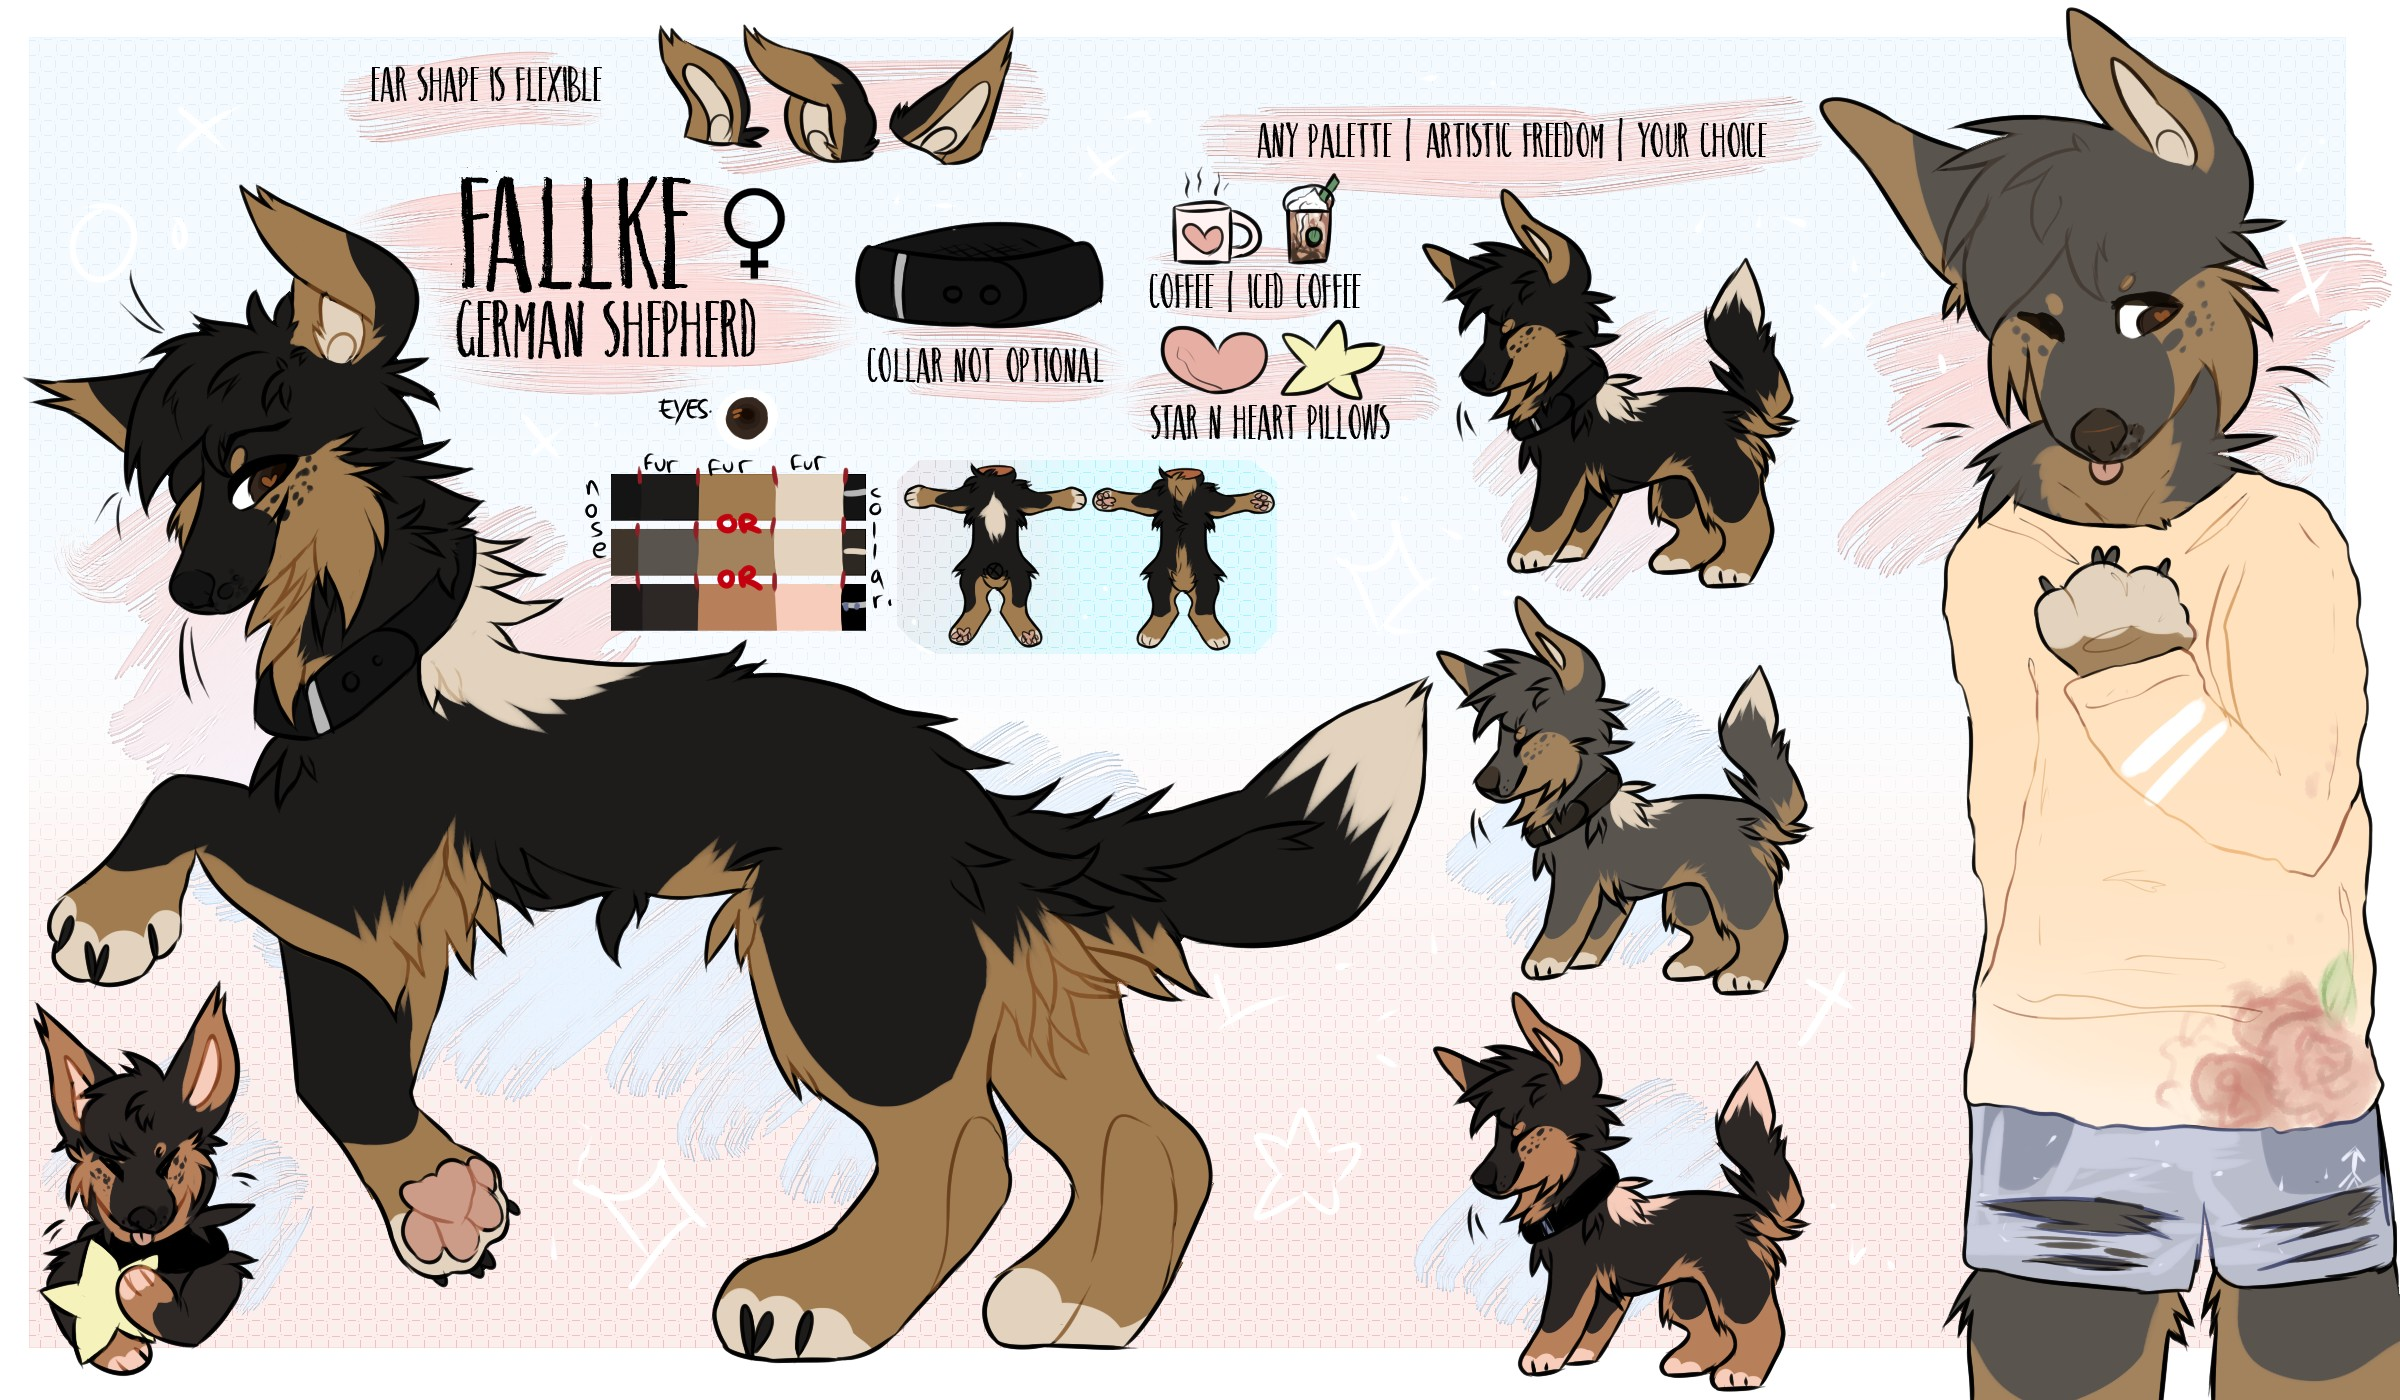 selling fursona 79 pieces of HQ art by pinewoIf on DeviantArt